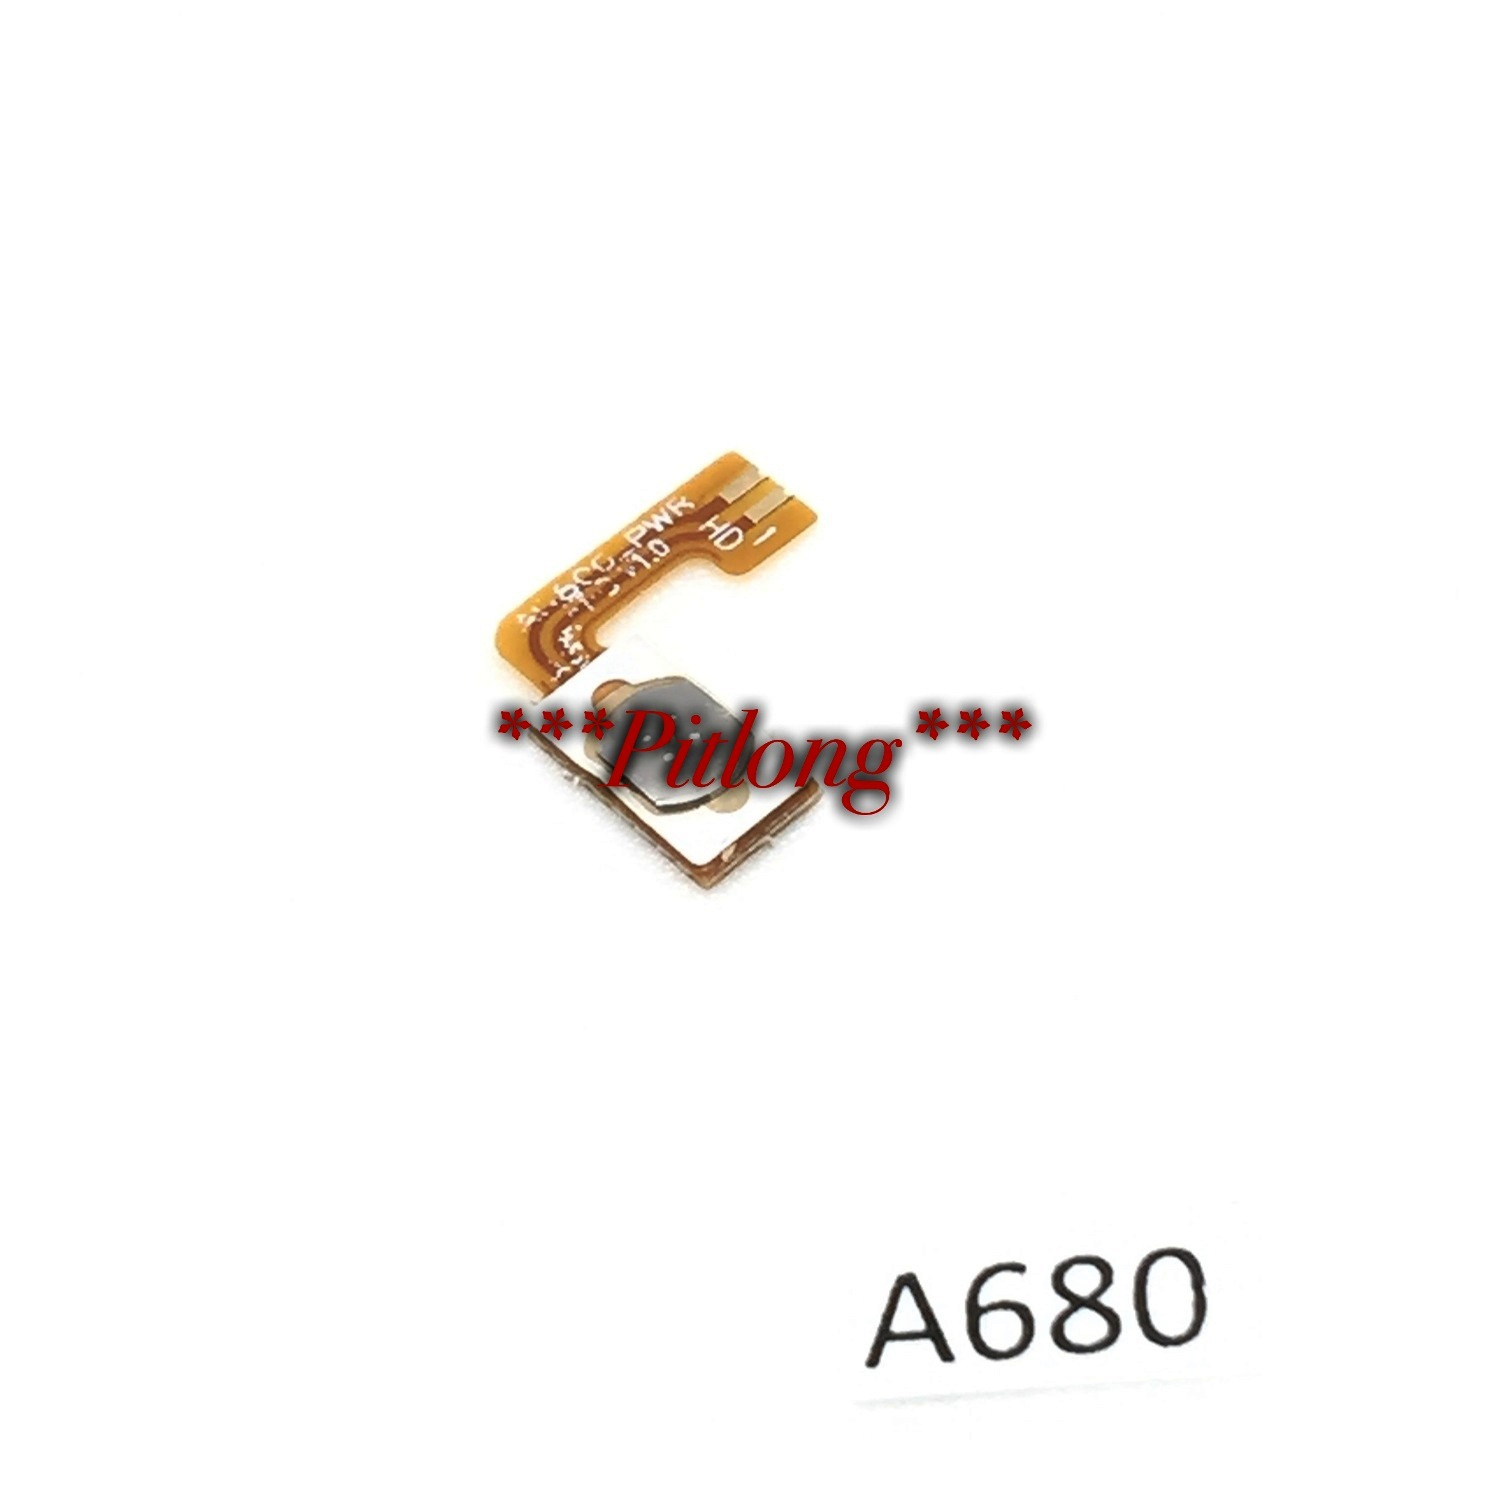 LENOVO A680 POWER BUTTON ON OFF FLEX CABLE^^ FREE TOOLS